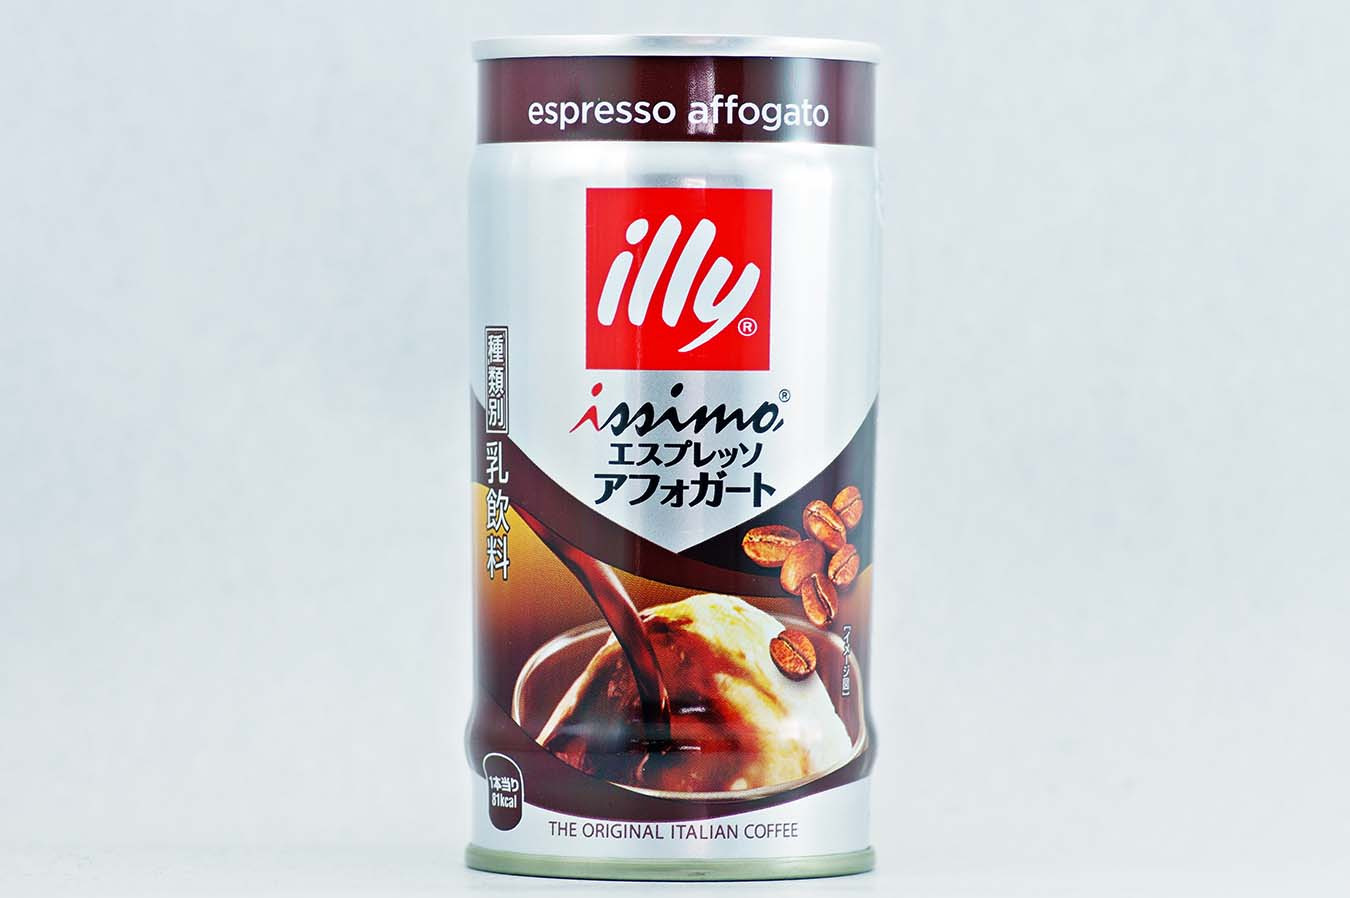 illy issimo エスプレッソ アフォガート